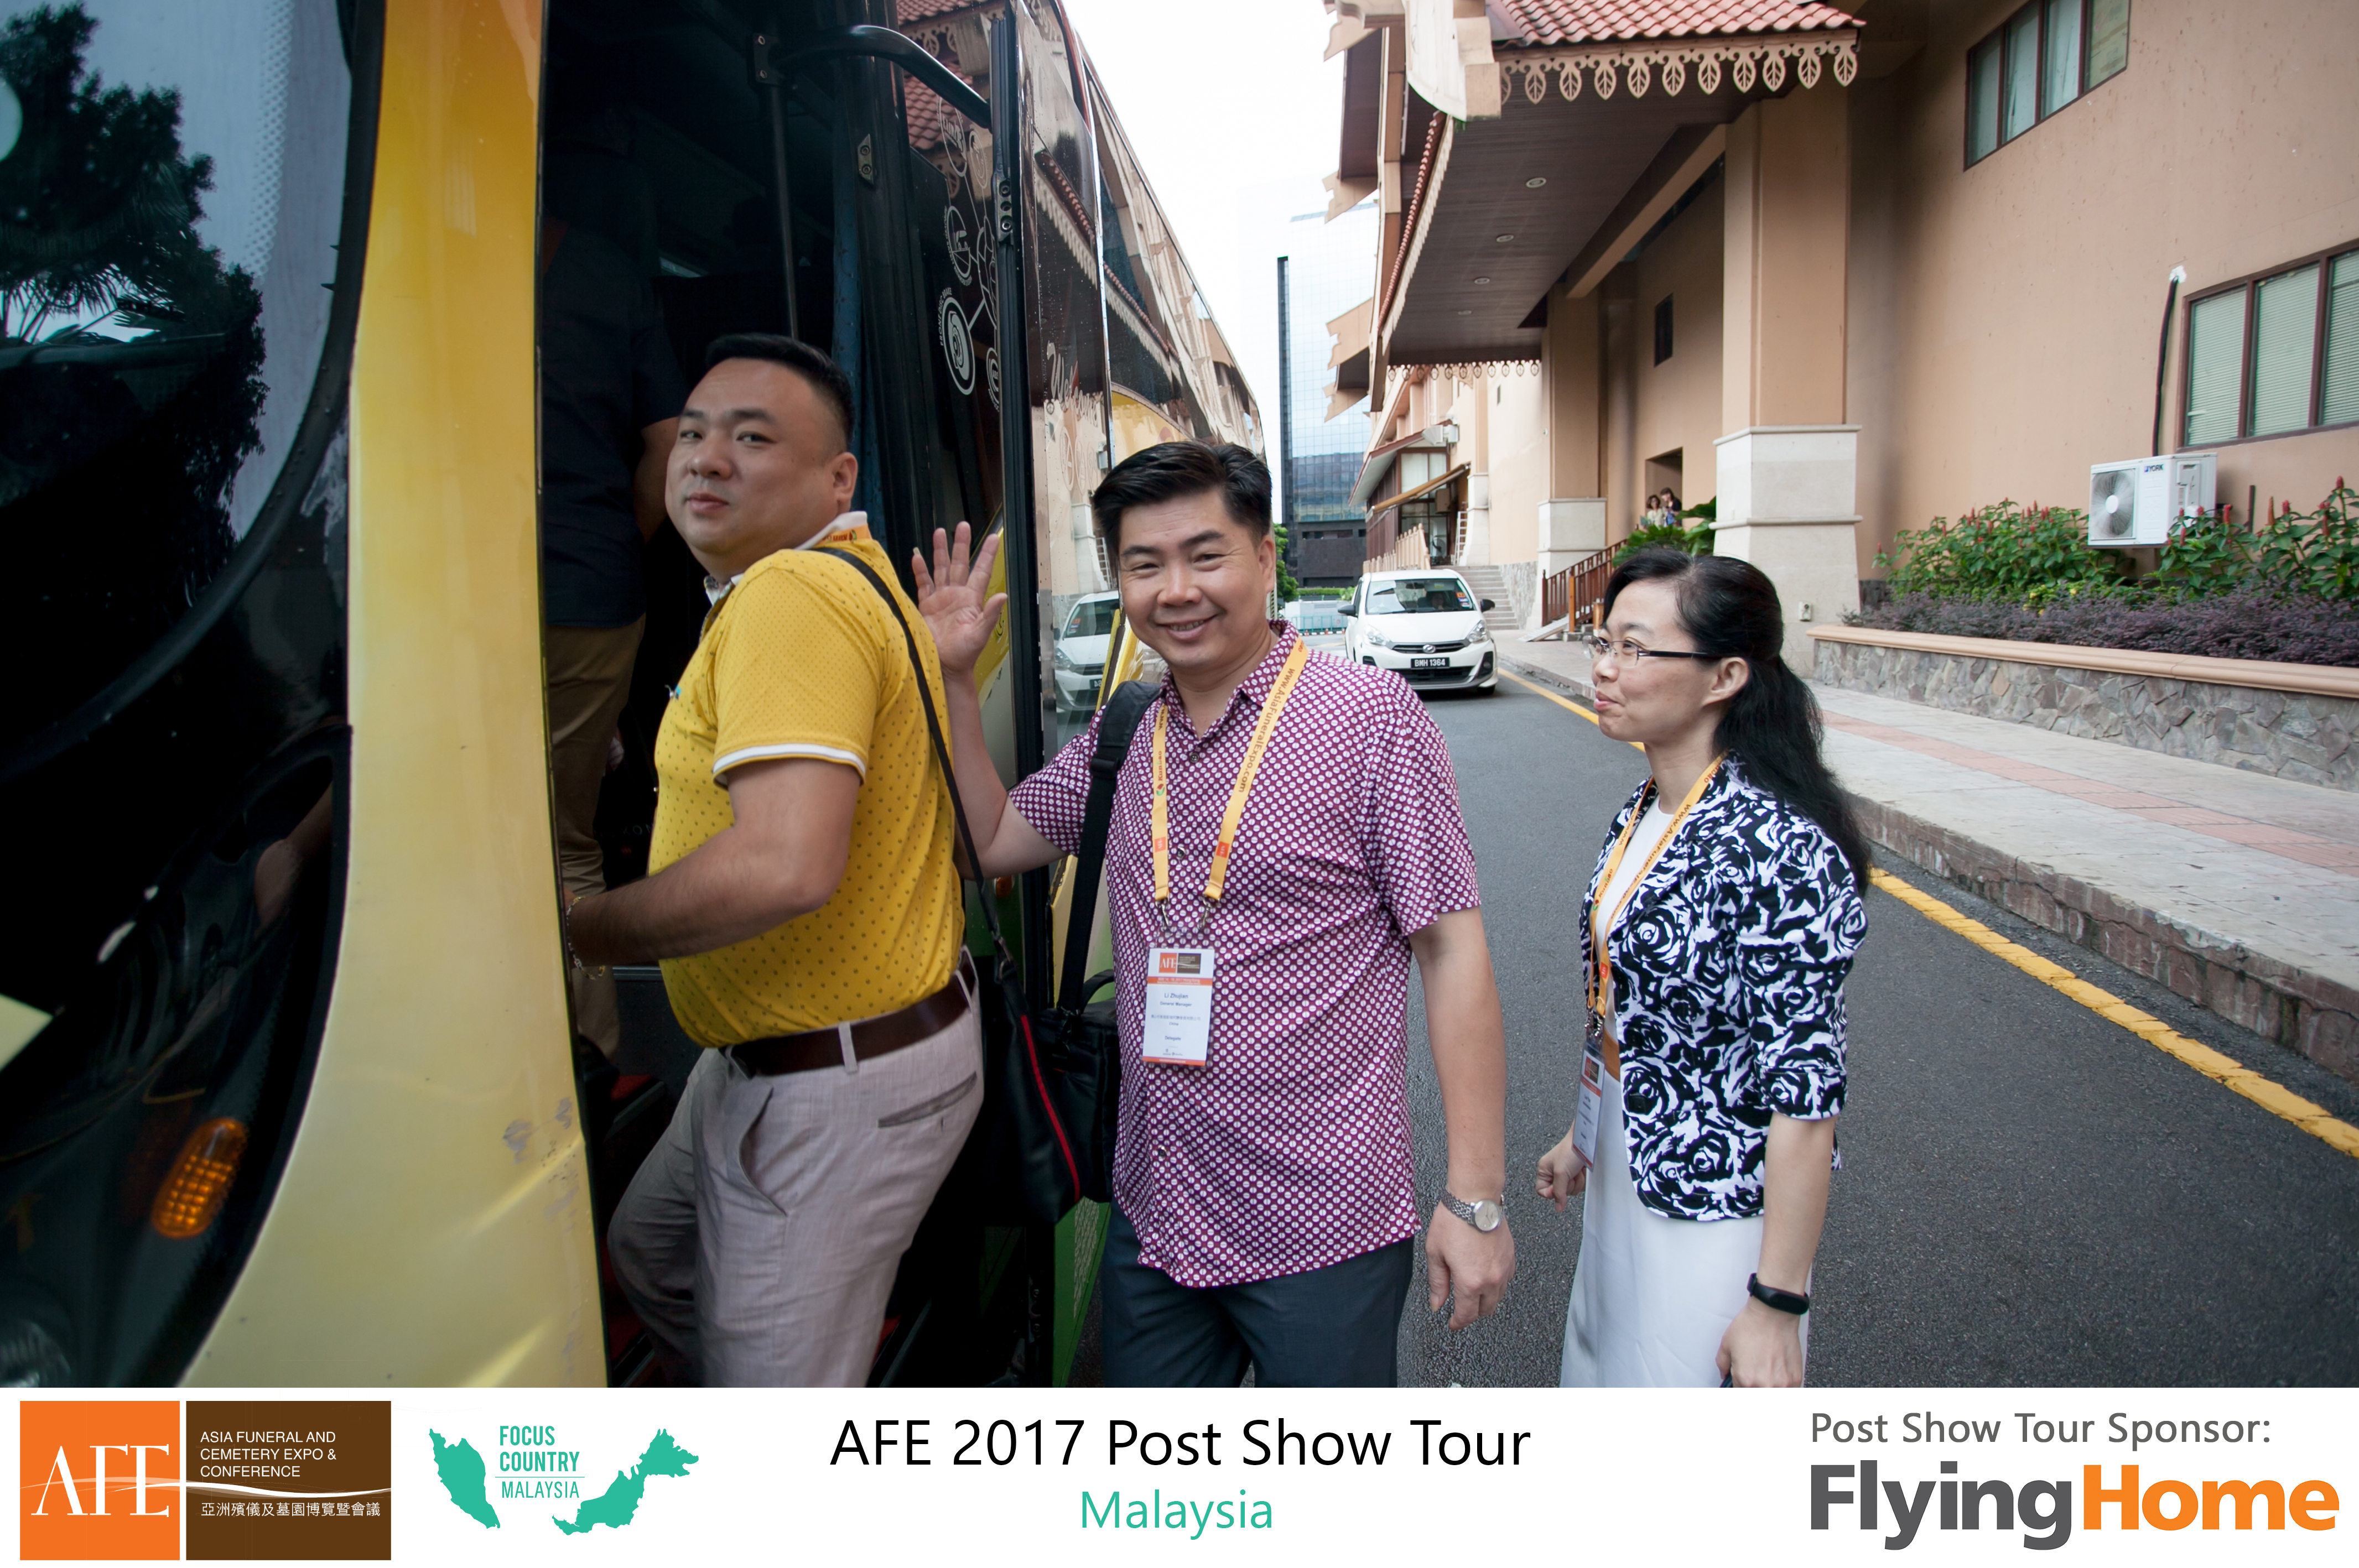 AFE Post Show Tour 2017 Day 2 - 41